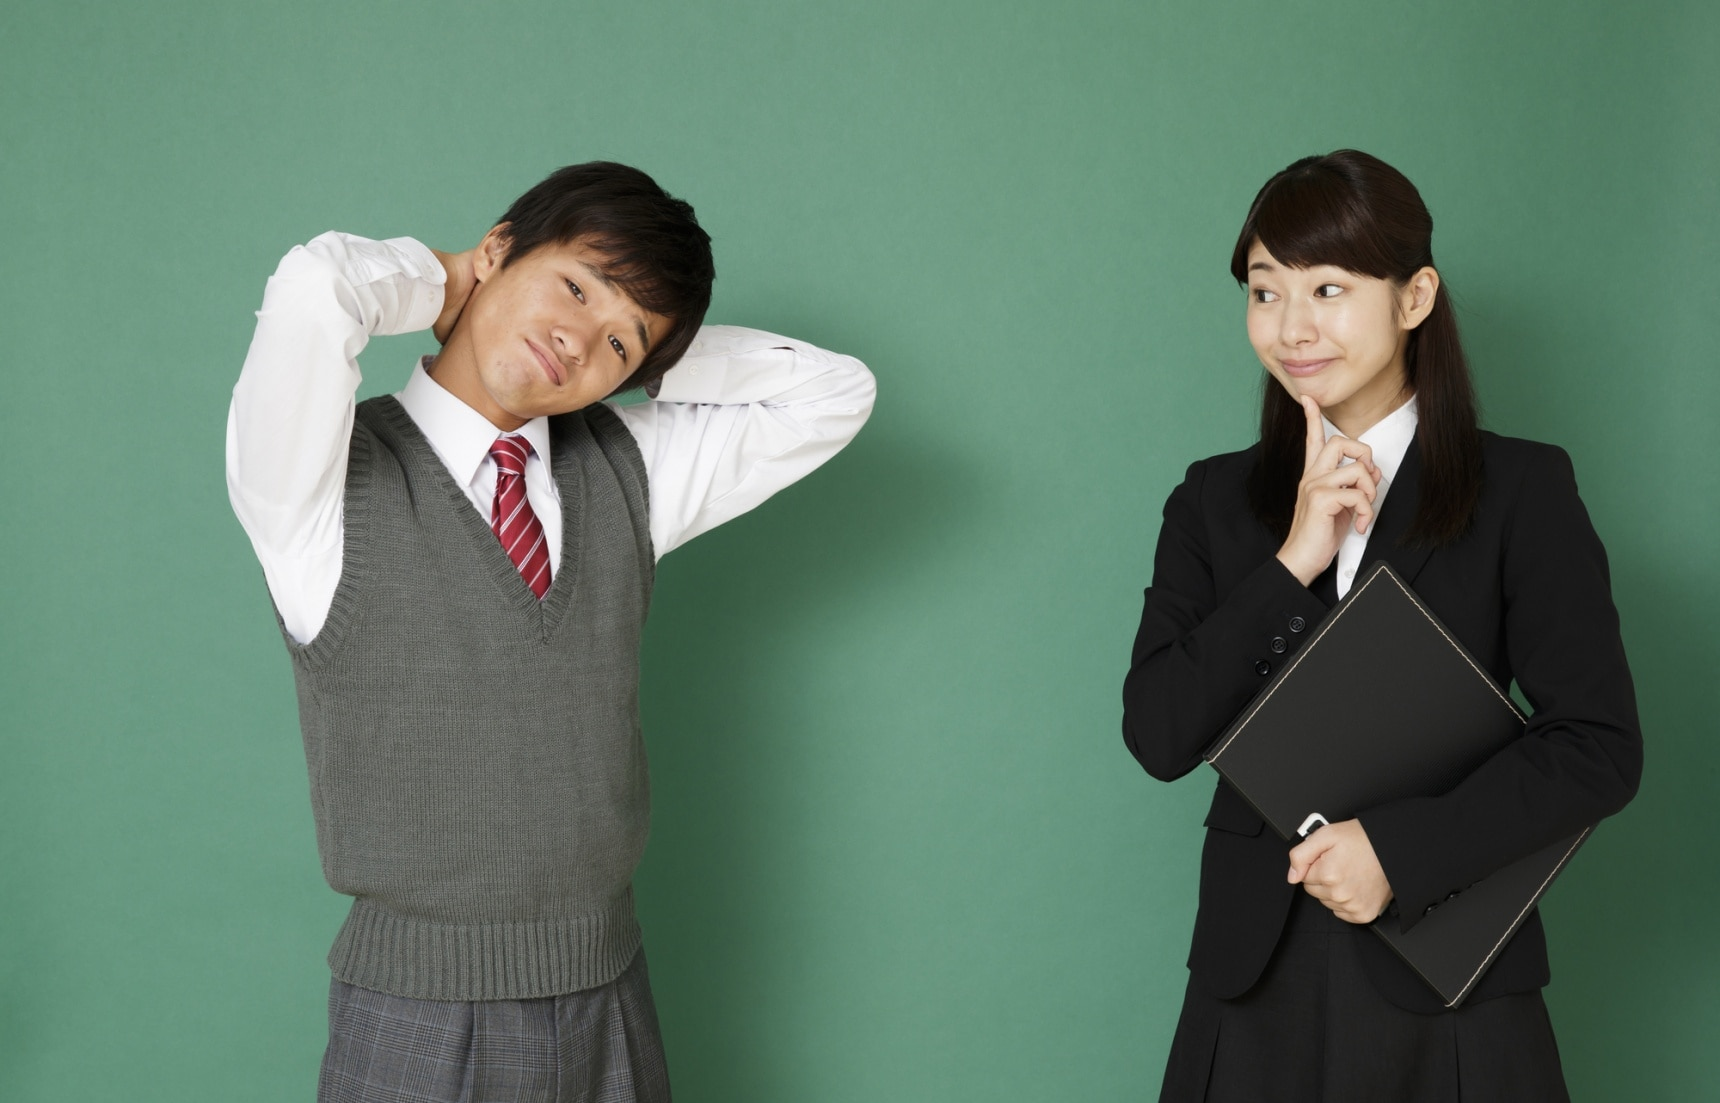 7 Tricky English to Japanese Translation Fails